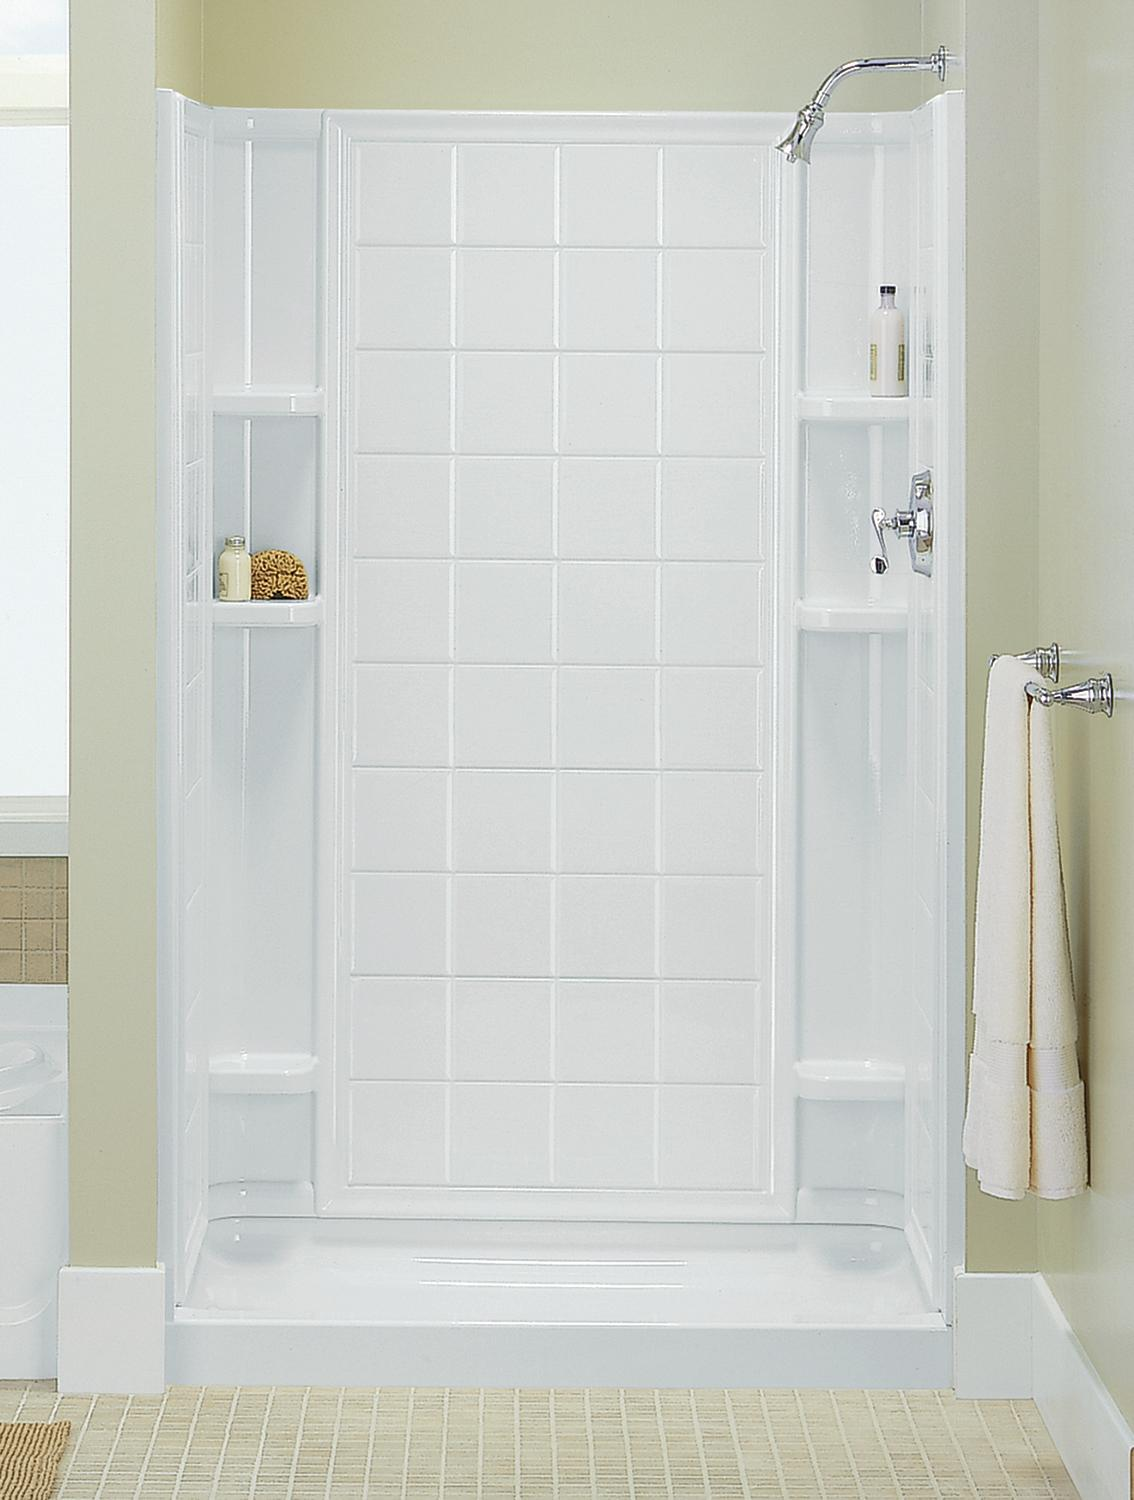 Sterling 72110100-0 Ensemble 42 Series 7211 Tile Alcove Shower, 42 ...